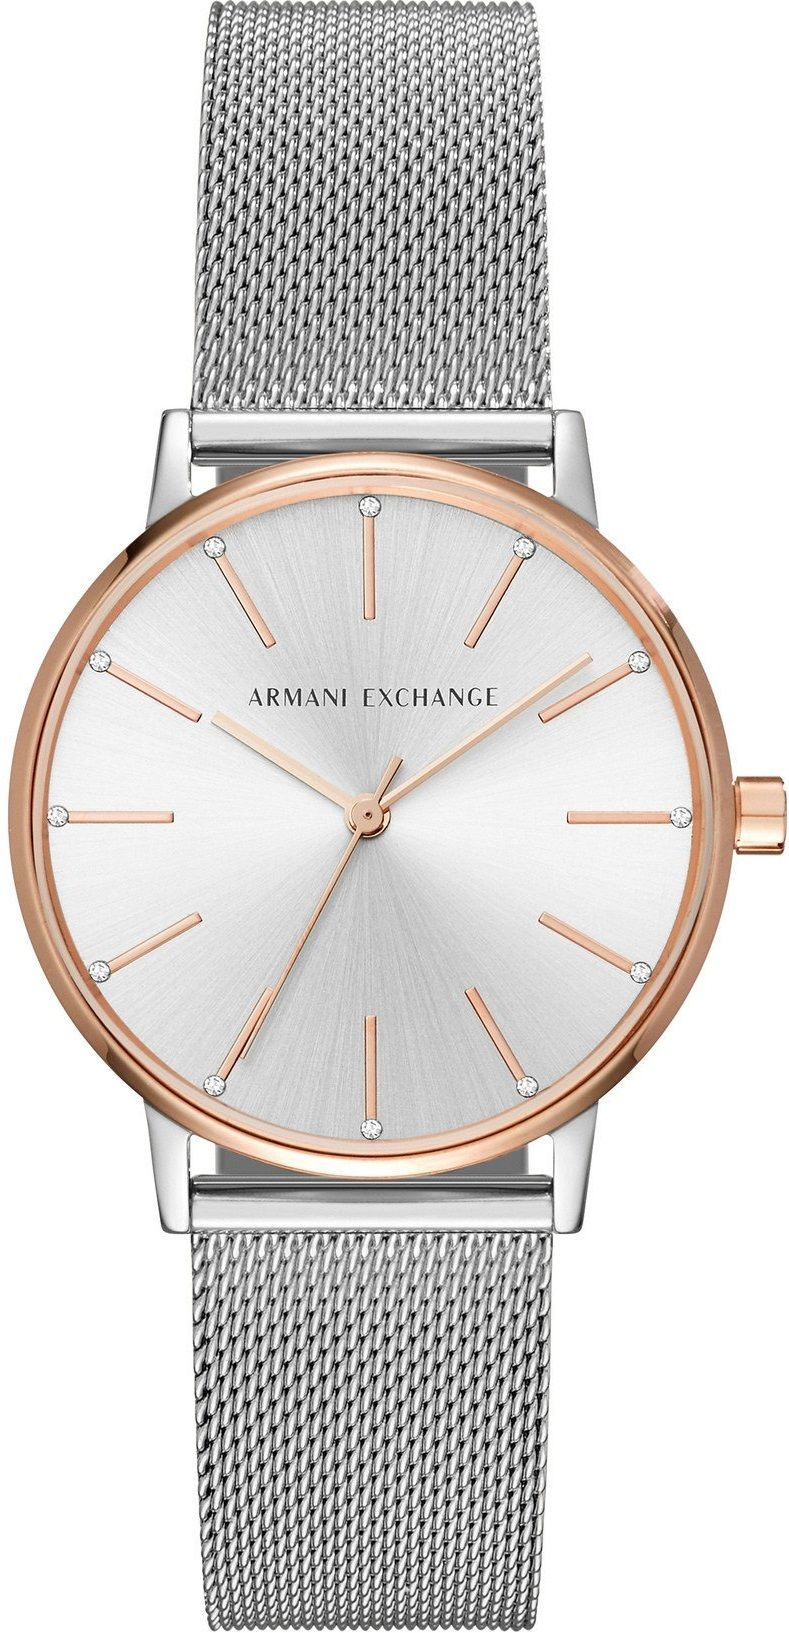 11e6e82a Armani Exchange Lola Three Hands 36mm Two Tone Rose Gold Stainless ...